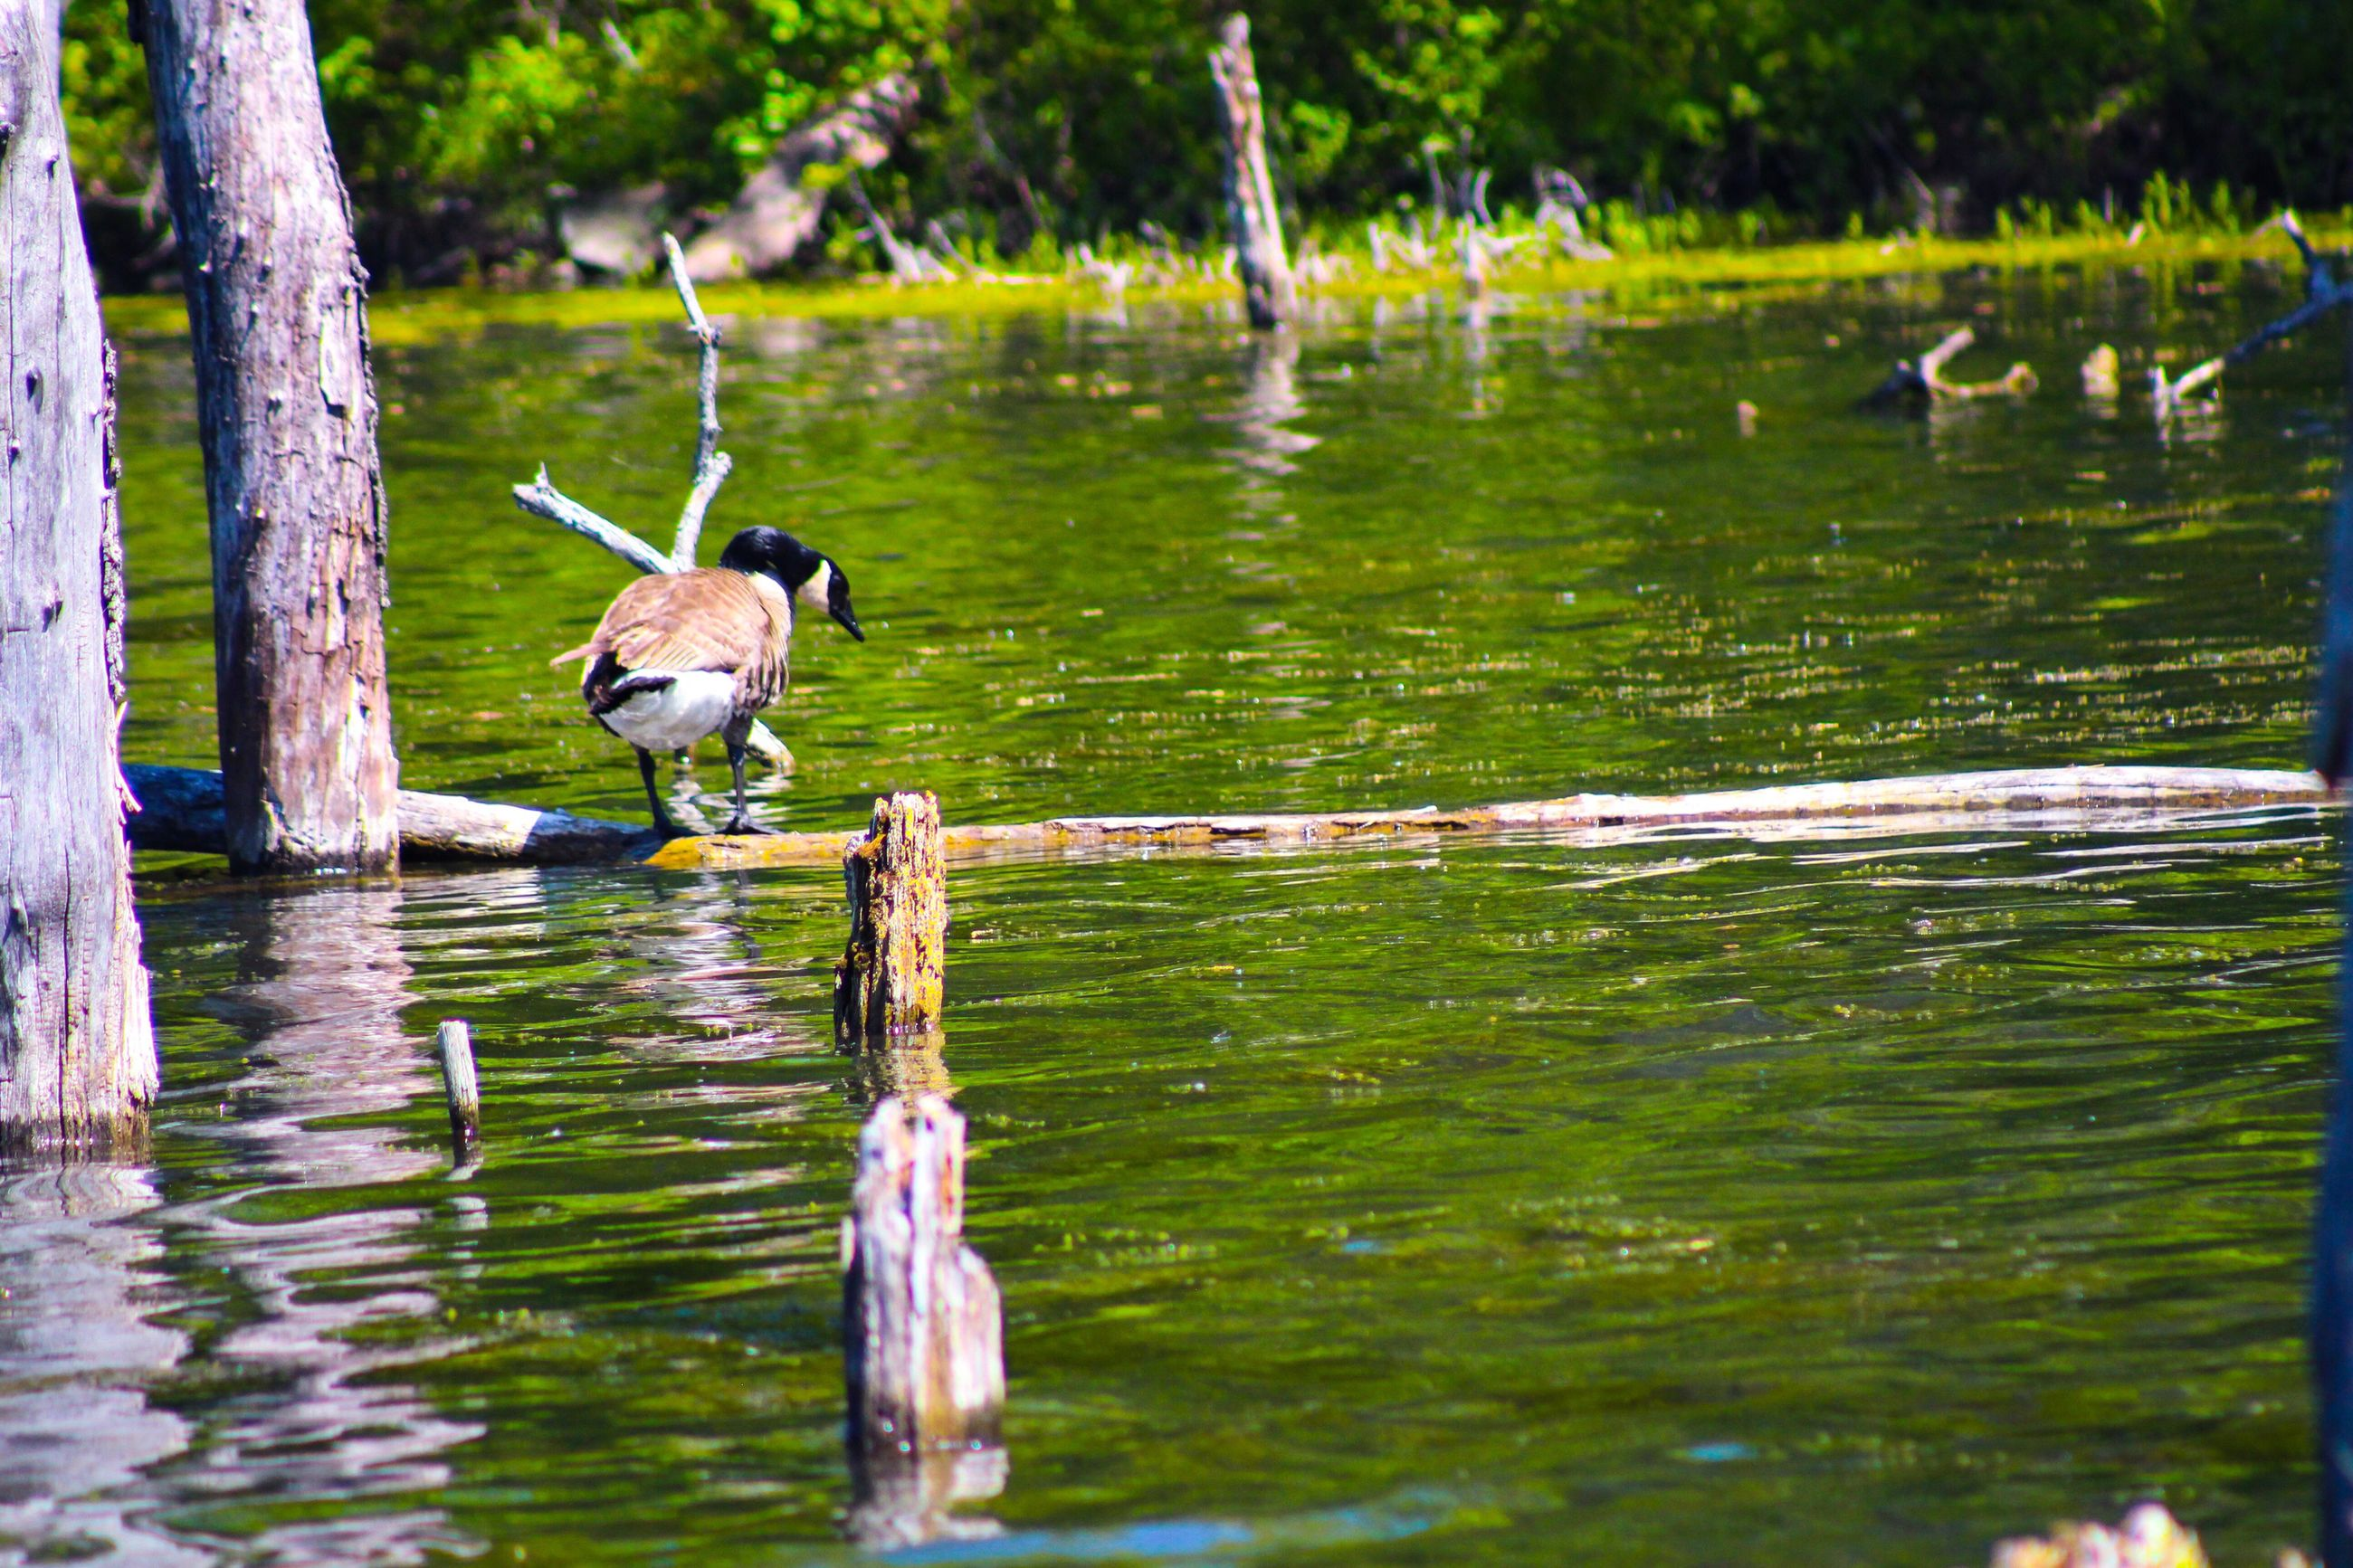 bird, animals in the wild, animal themes, water, animal wildlife, reflection, lake, one animal, nature, day, outdoors, water bird, no people, waterfront, tree, gray heron, grass, beauty in nature, spread wings